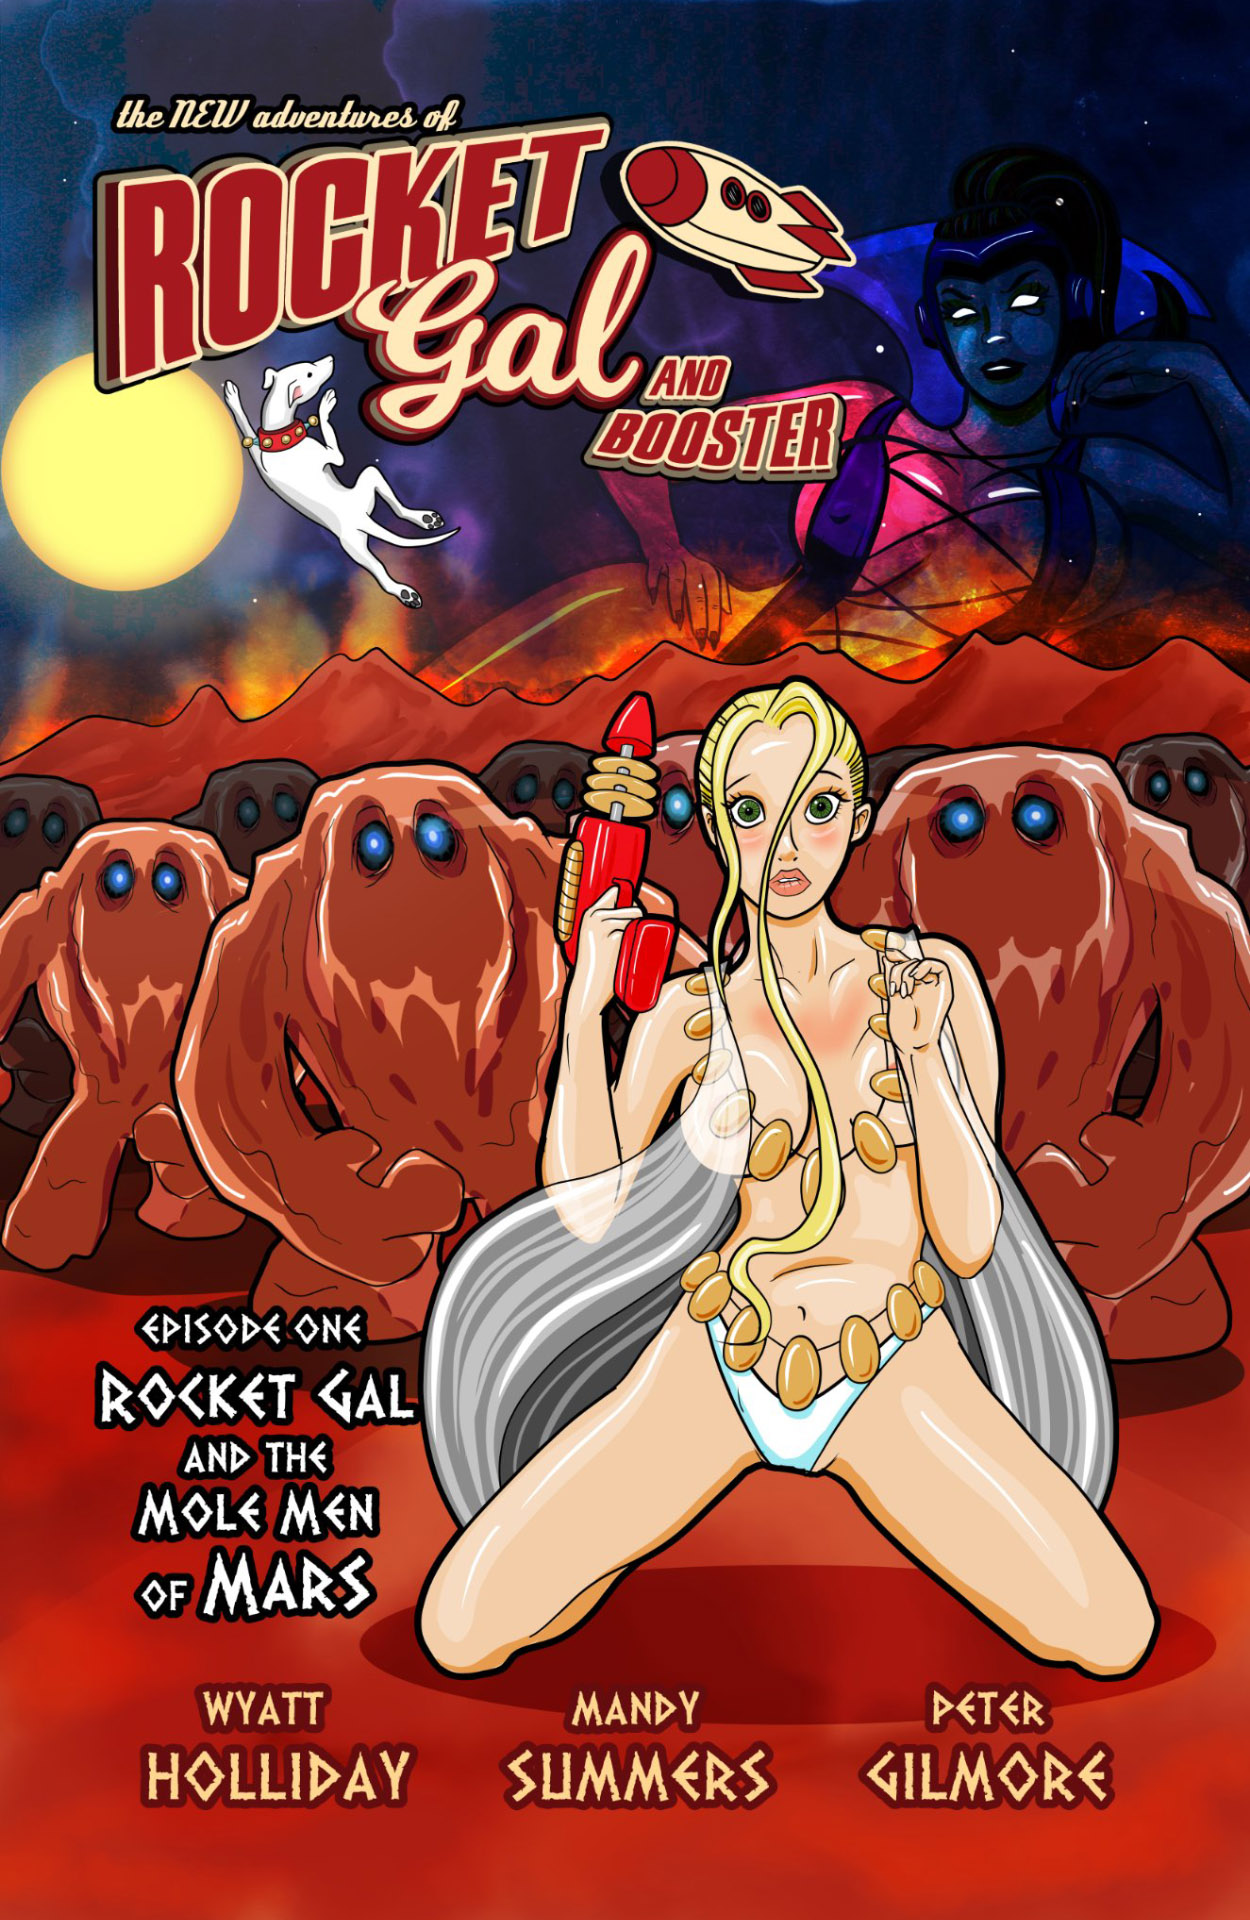 Rocket Gal and the Mole Men of Mars